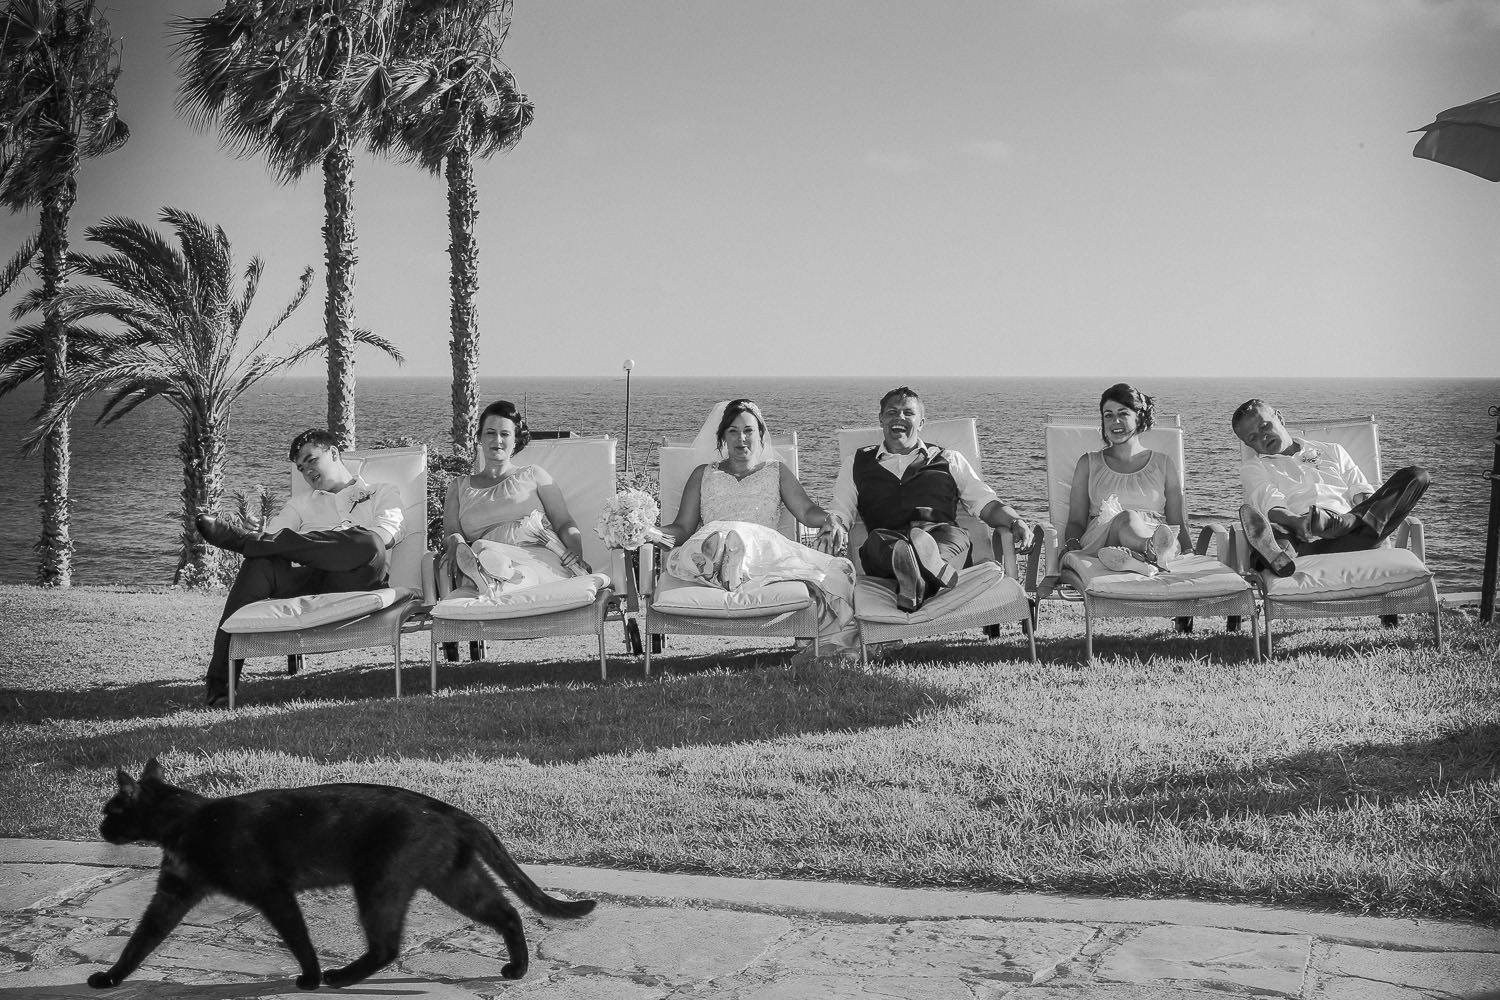 photo of black cat walking past in bridal party picture sitting on sun beds alexander the great hotel paphos cyprus